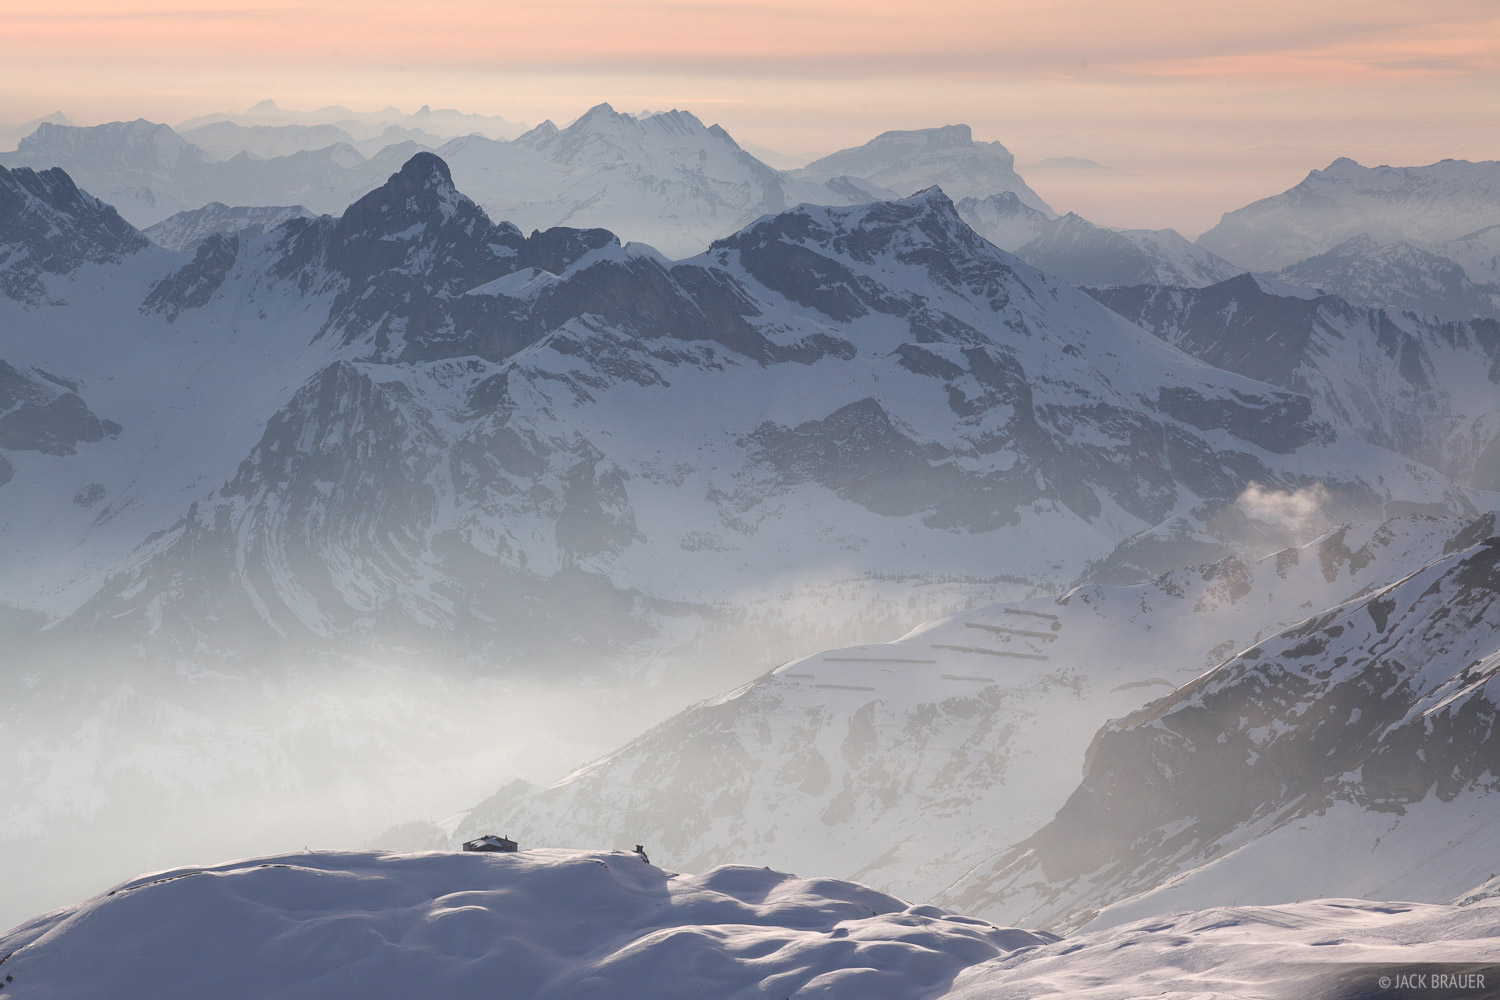 The Rugghubelhüttealpine hut sits on a snowy ridge above Engelberg, with a hazy Swiss Alps backdrop - February.